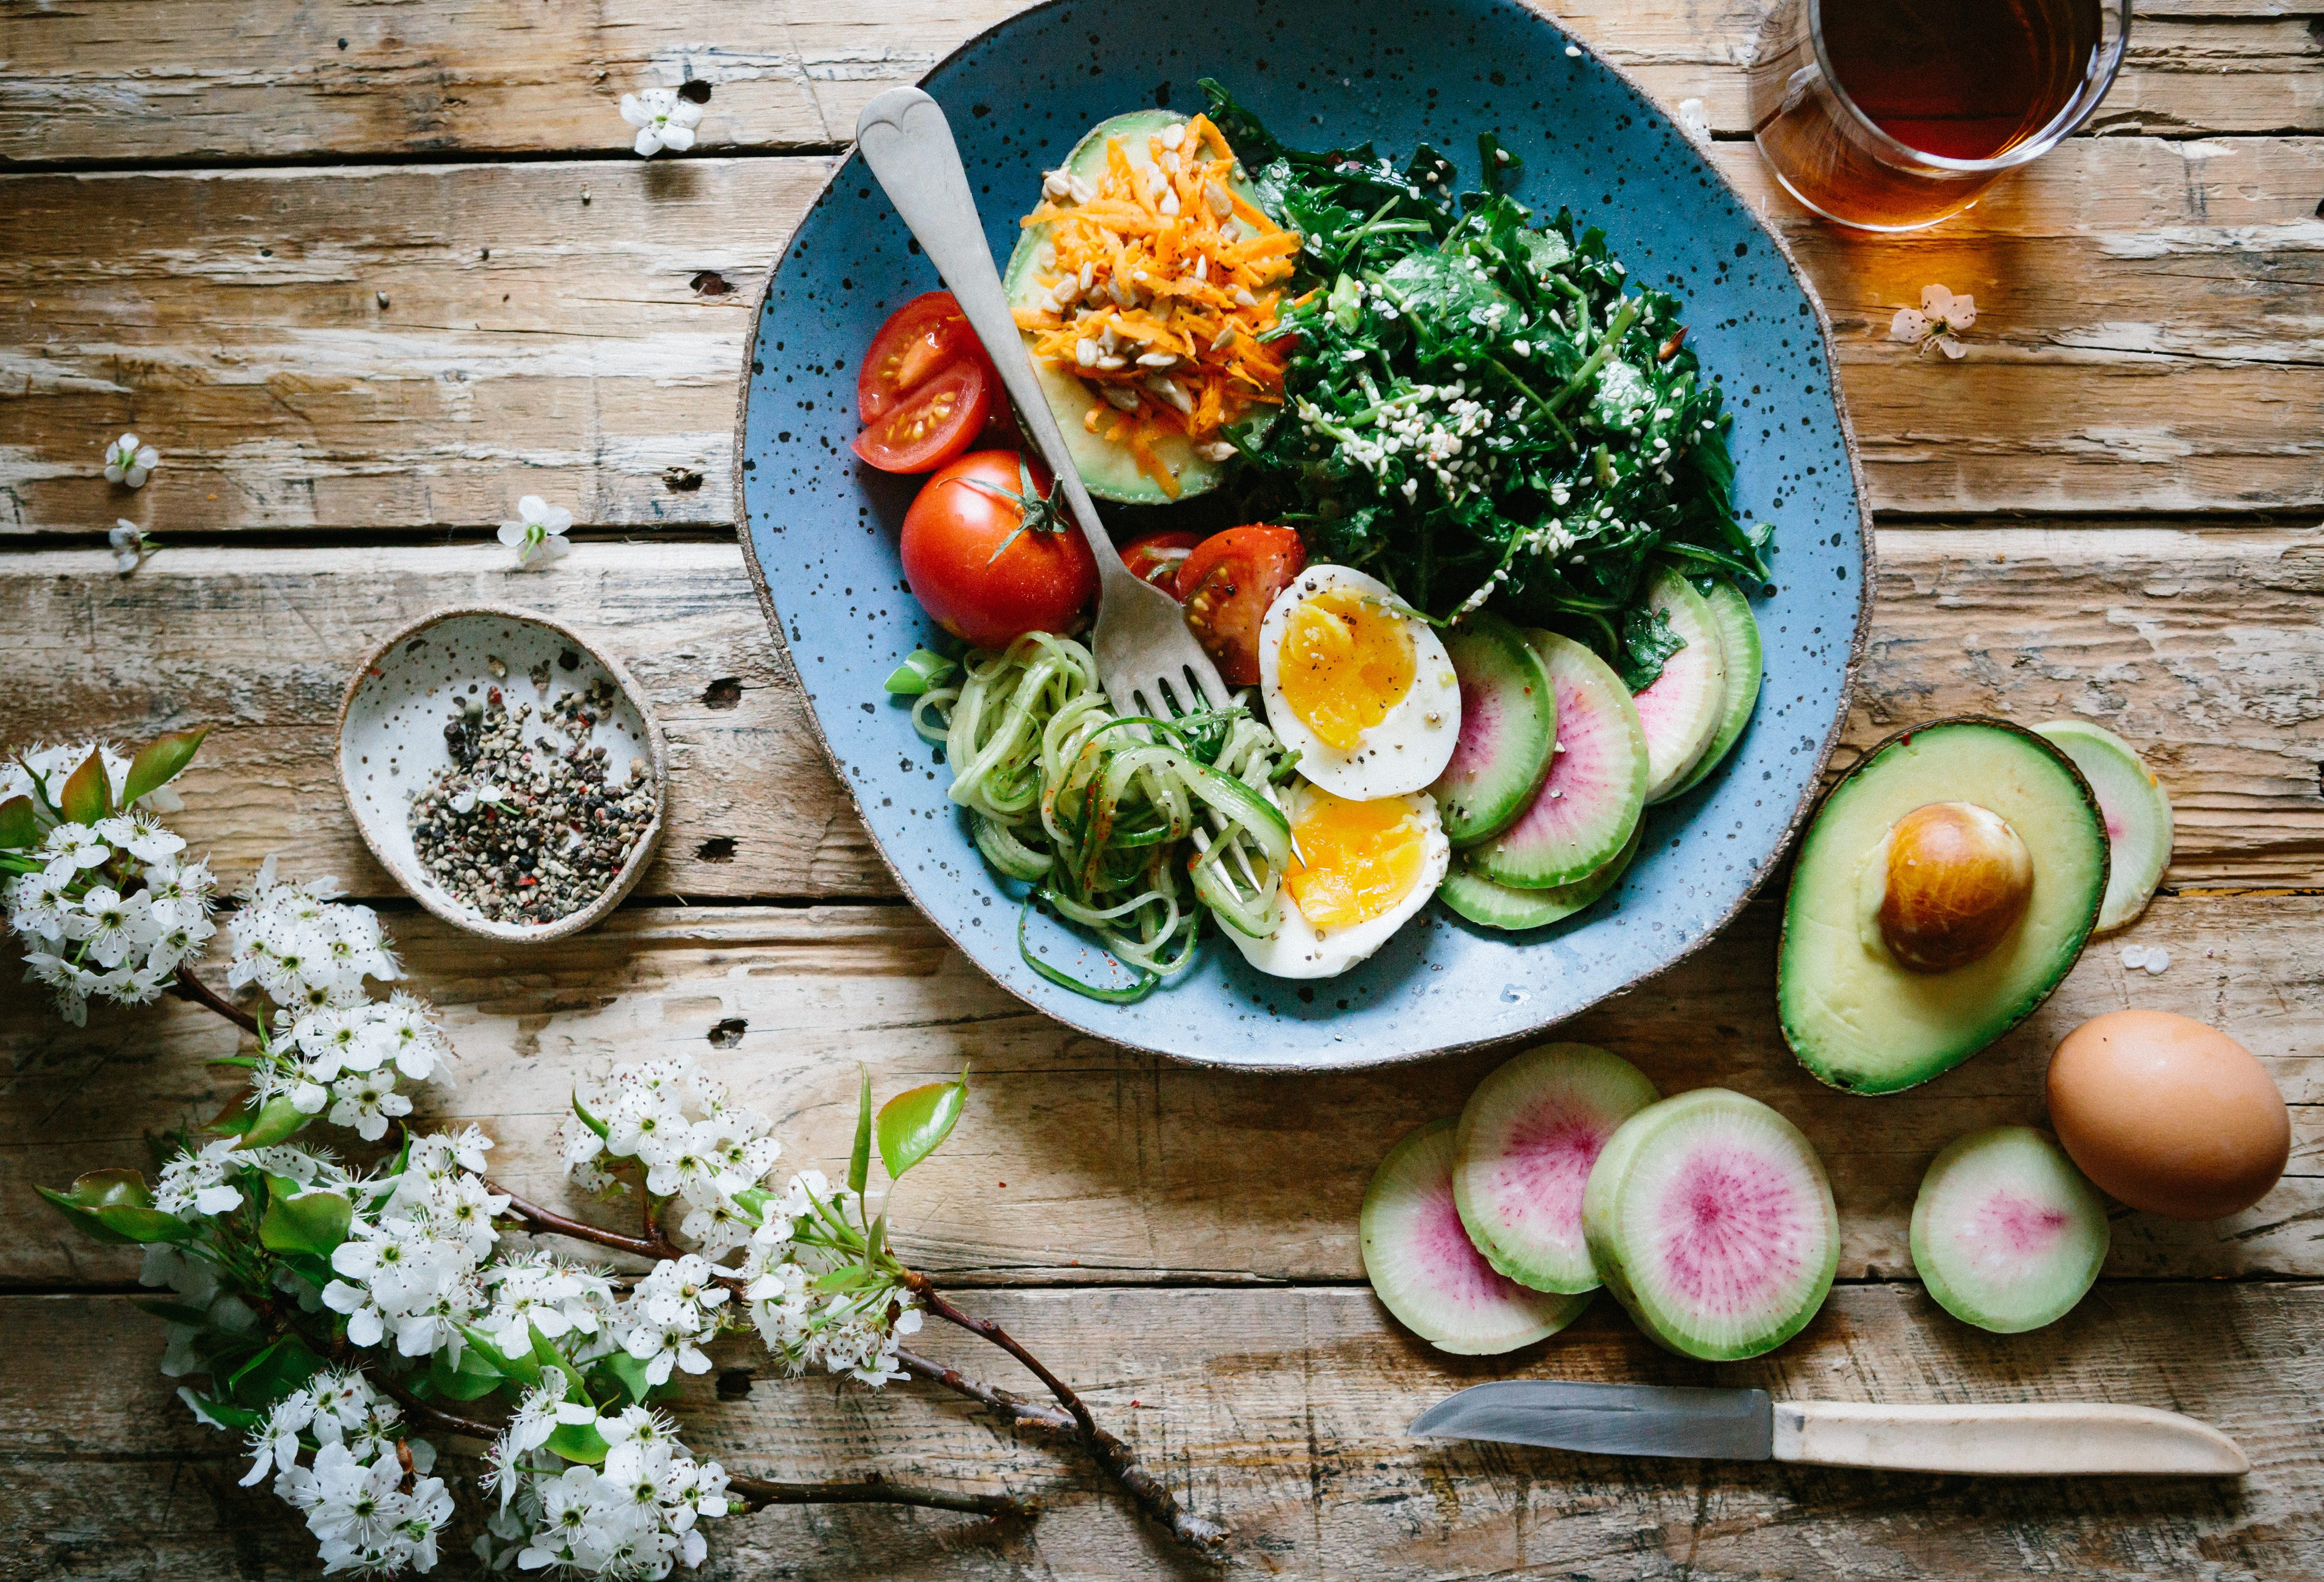 Image of blue ceramic bowl with eggs, spinach, avocado, tomatoes and cheese in it. Bowl is on wood counter, with cut up vegetables around it.